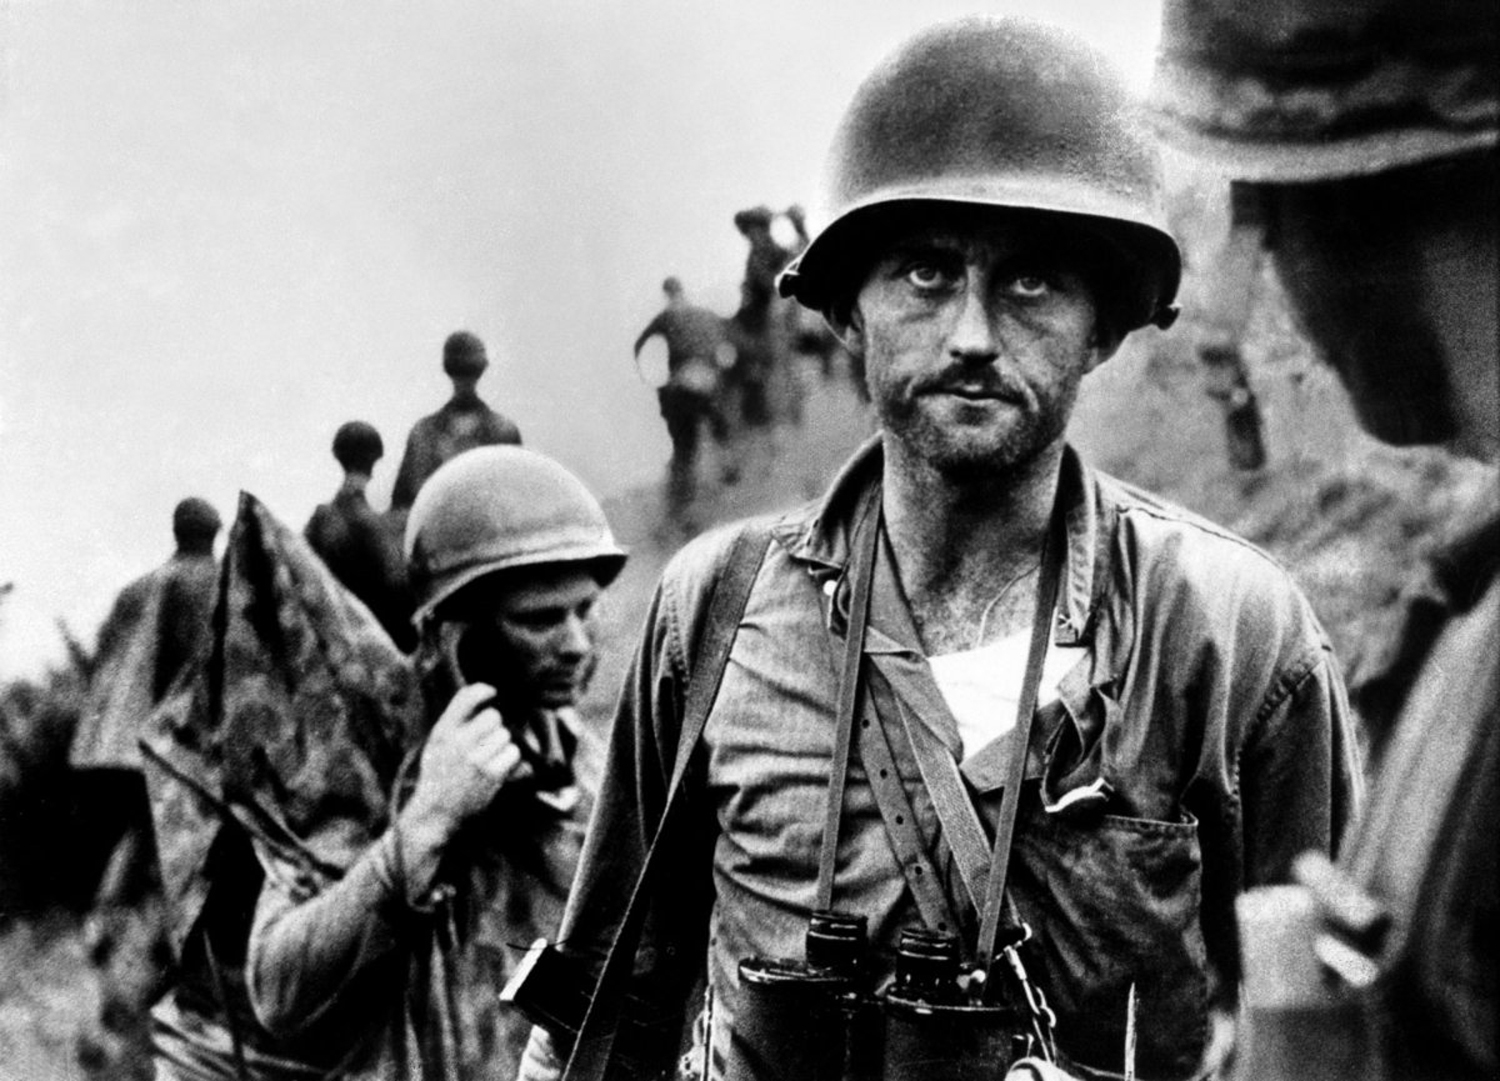 """Marine Capt. Francis """"Ike"""" Fenton ponders his fate and the fate of his men after being told that his company is nearly out of ammunition, Korea, 1950."""